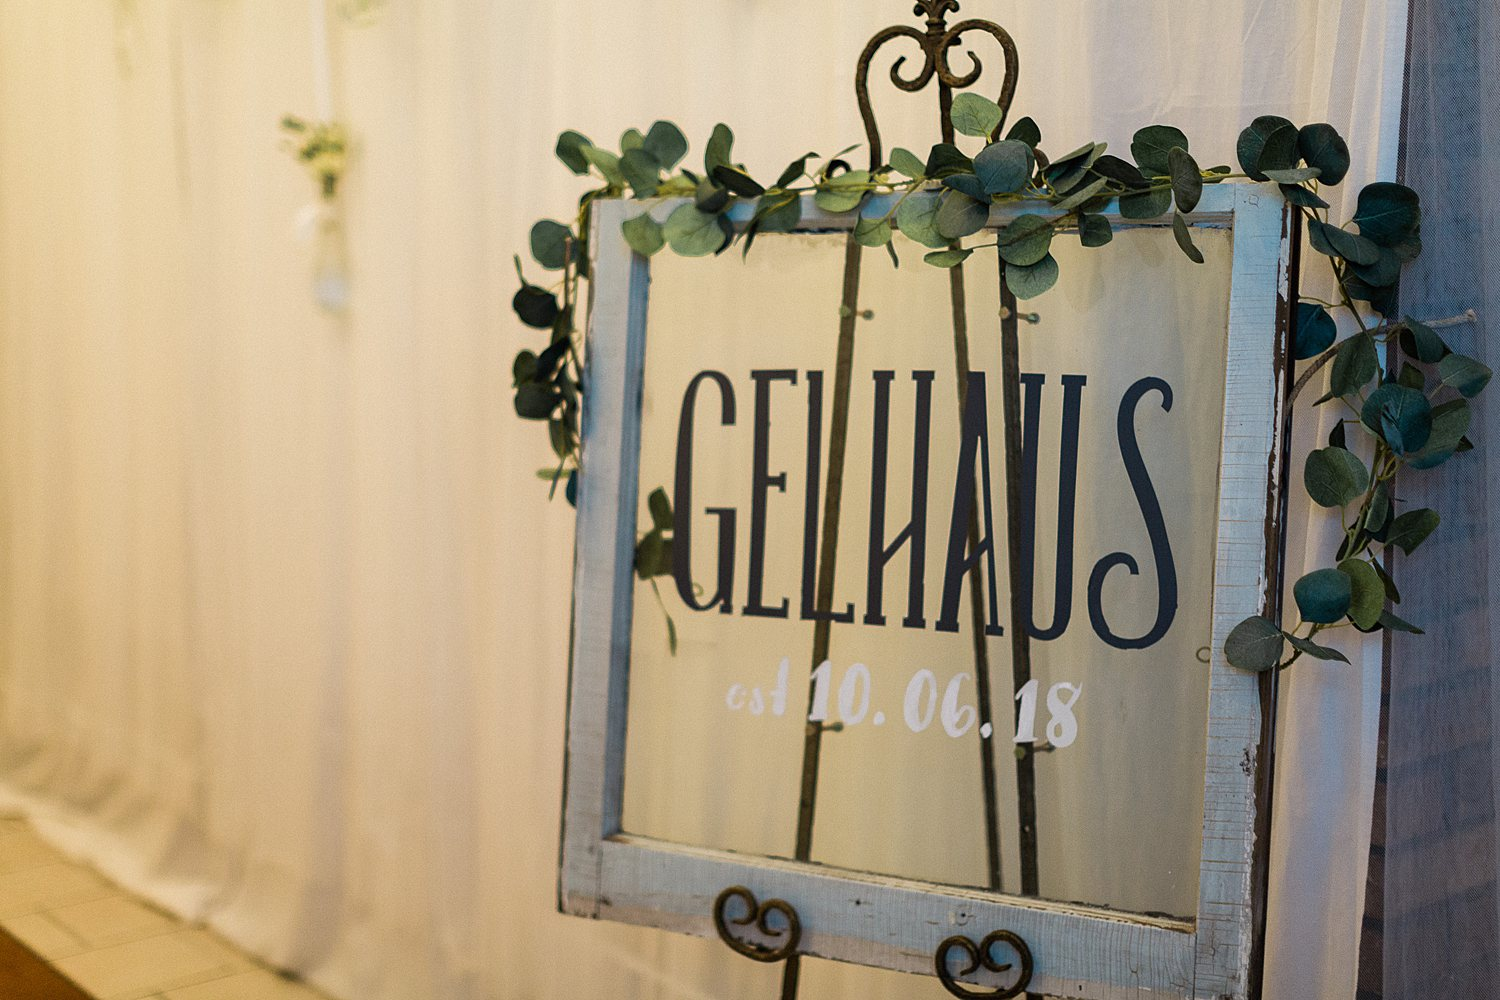 North_Central_Wisconsin_Event_Wedding_Venues_Fall_Weddings_The_Bailiwick_Venue_James-Stokes-Photography077.jpg